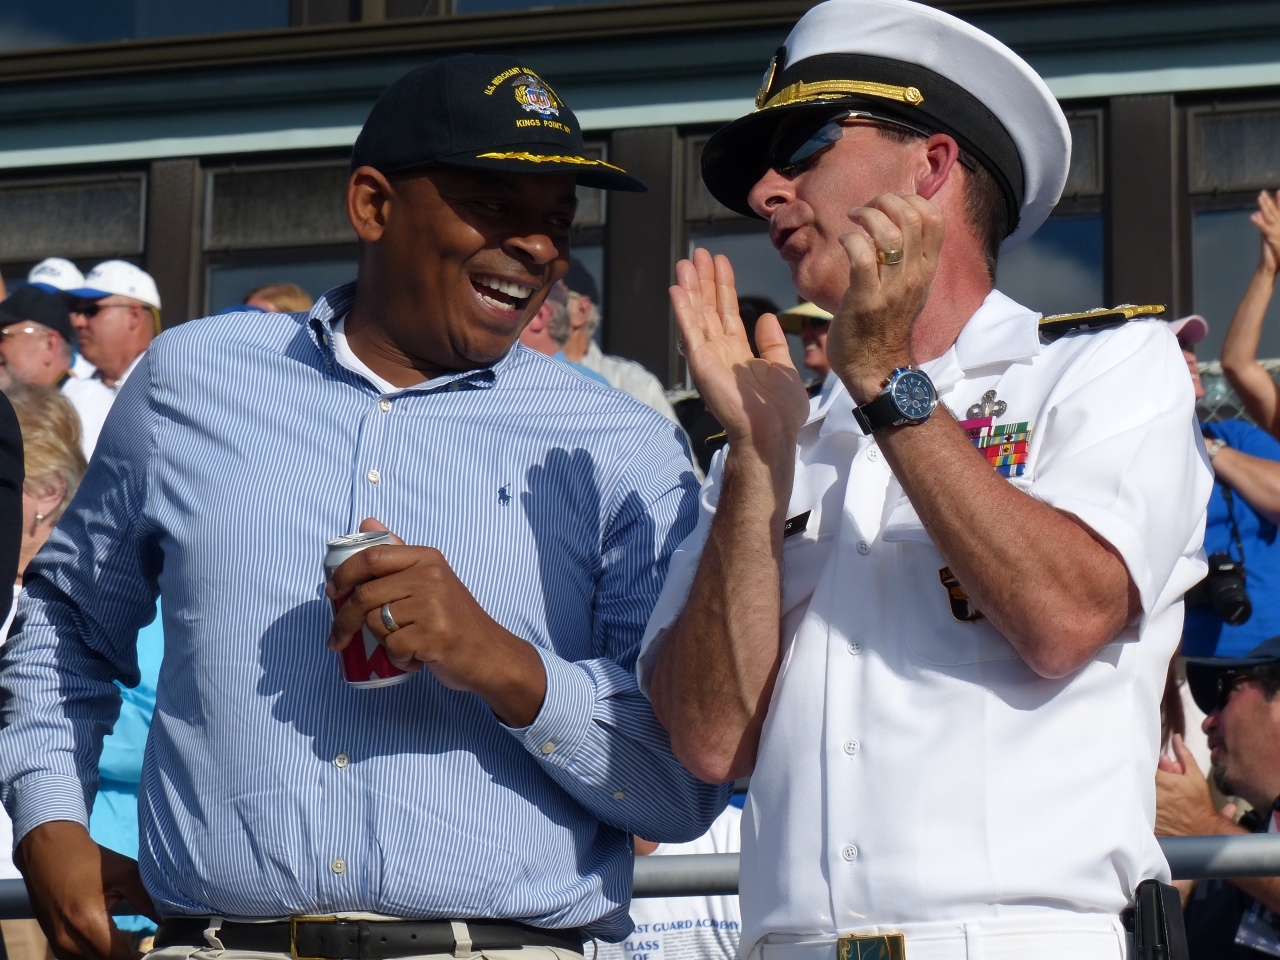 Photo of Secretary Foxx cheering on the mariners with RADM Helis